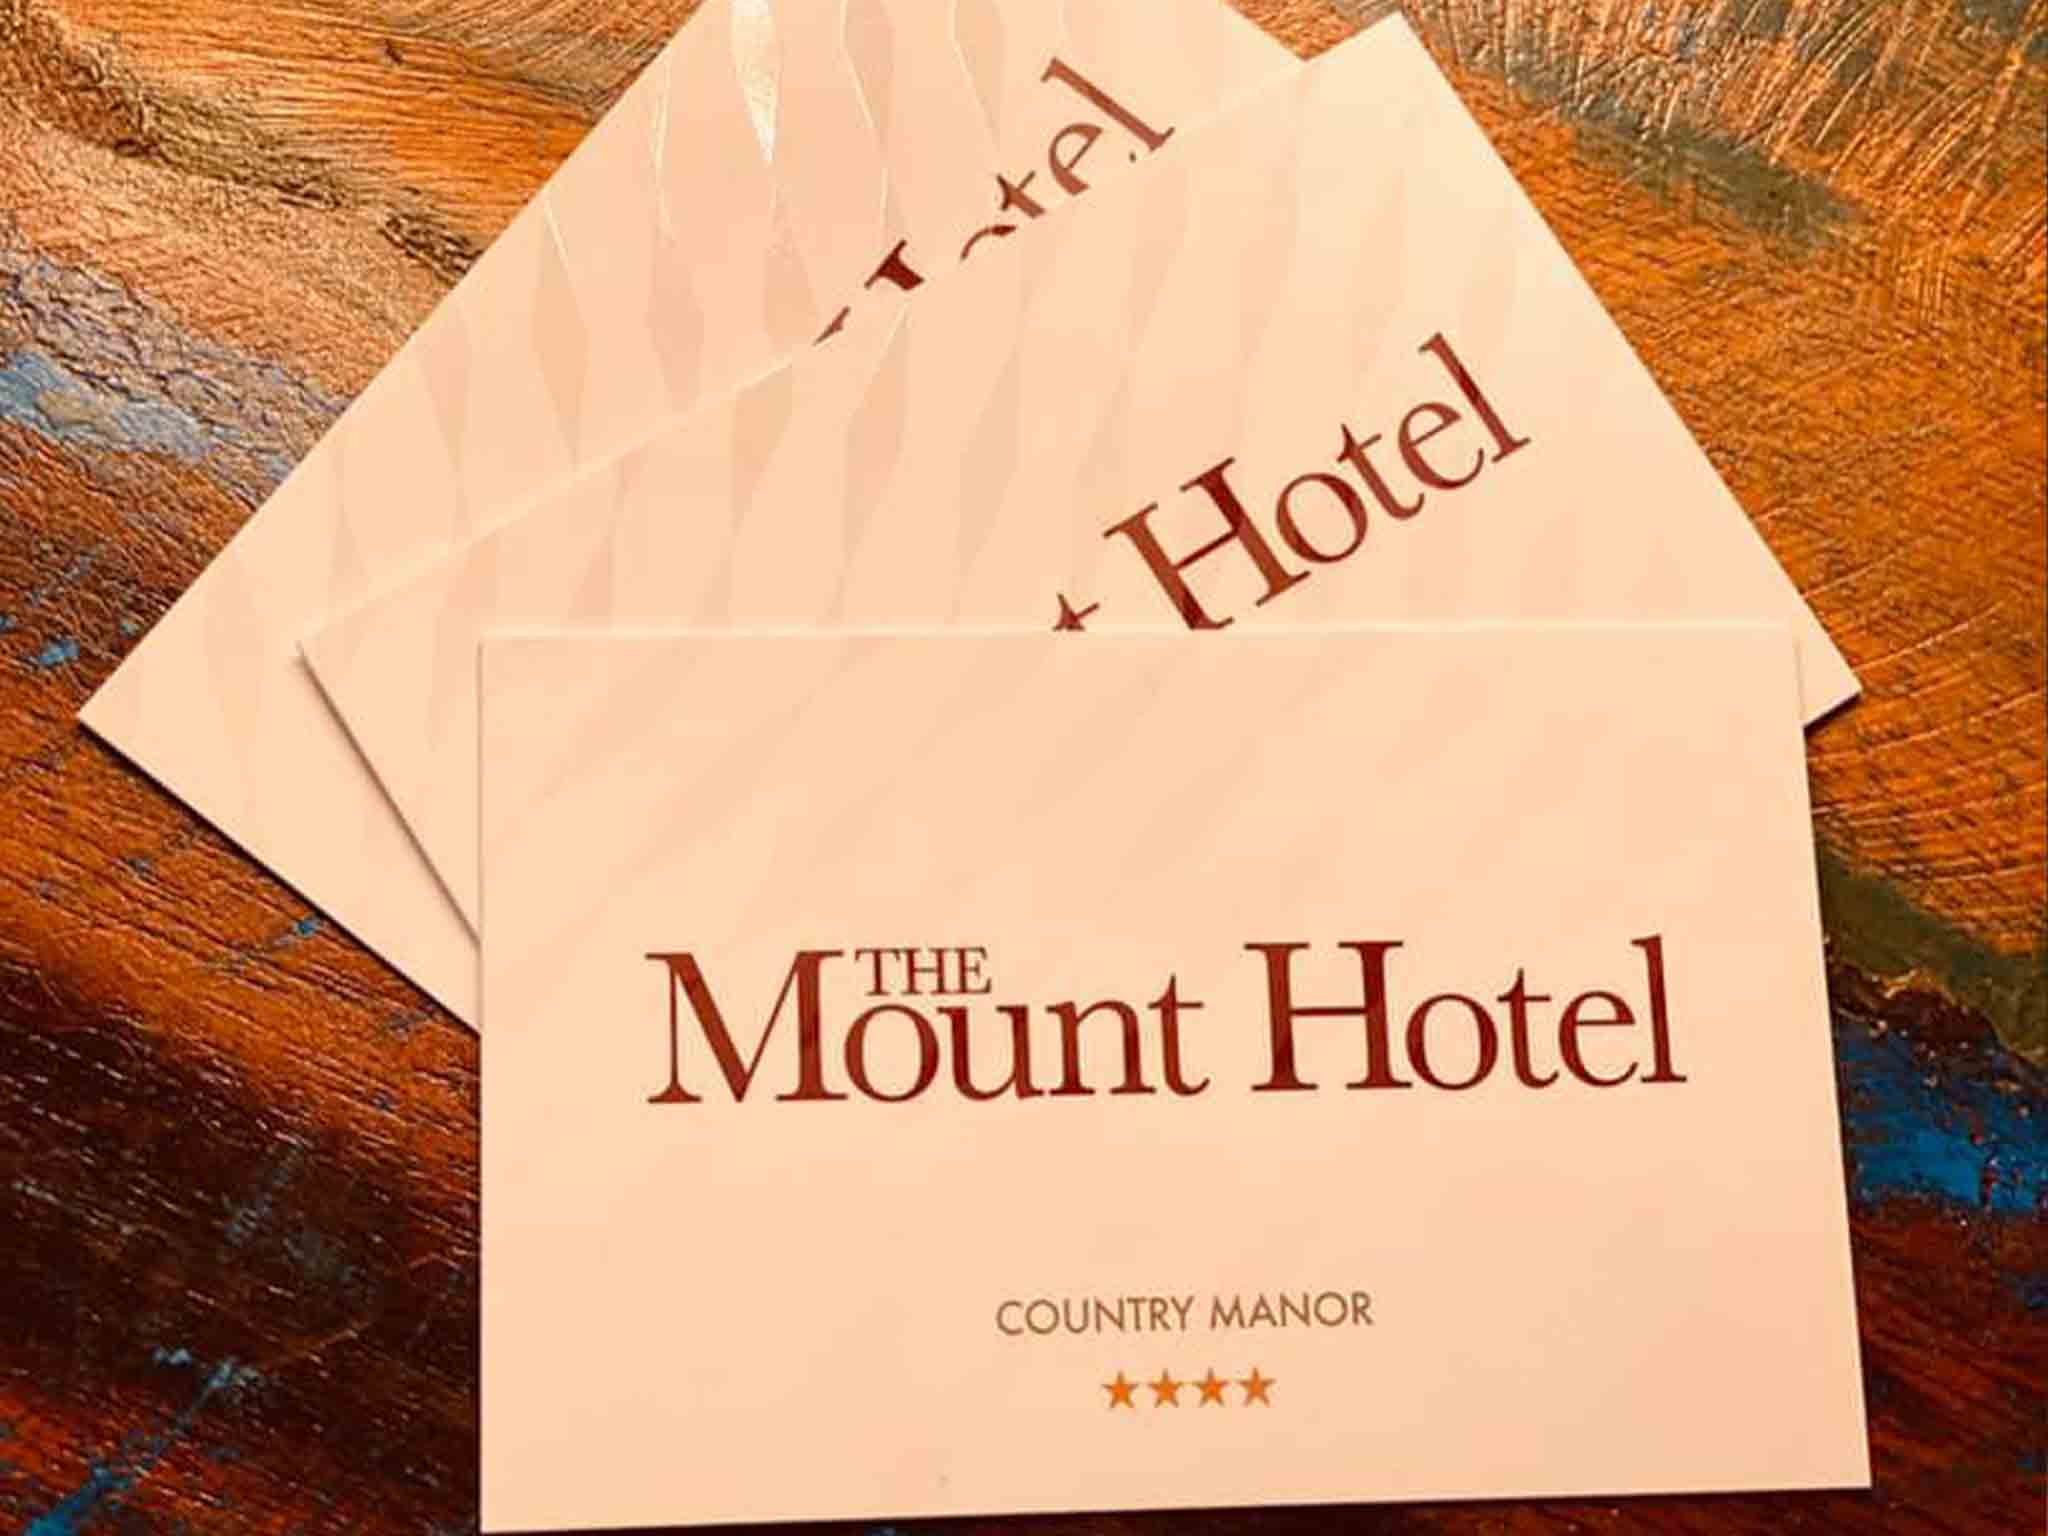 The Mount Hotel Business Card Design Print